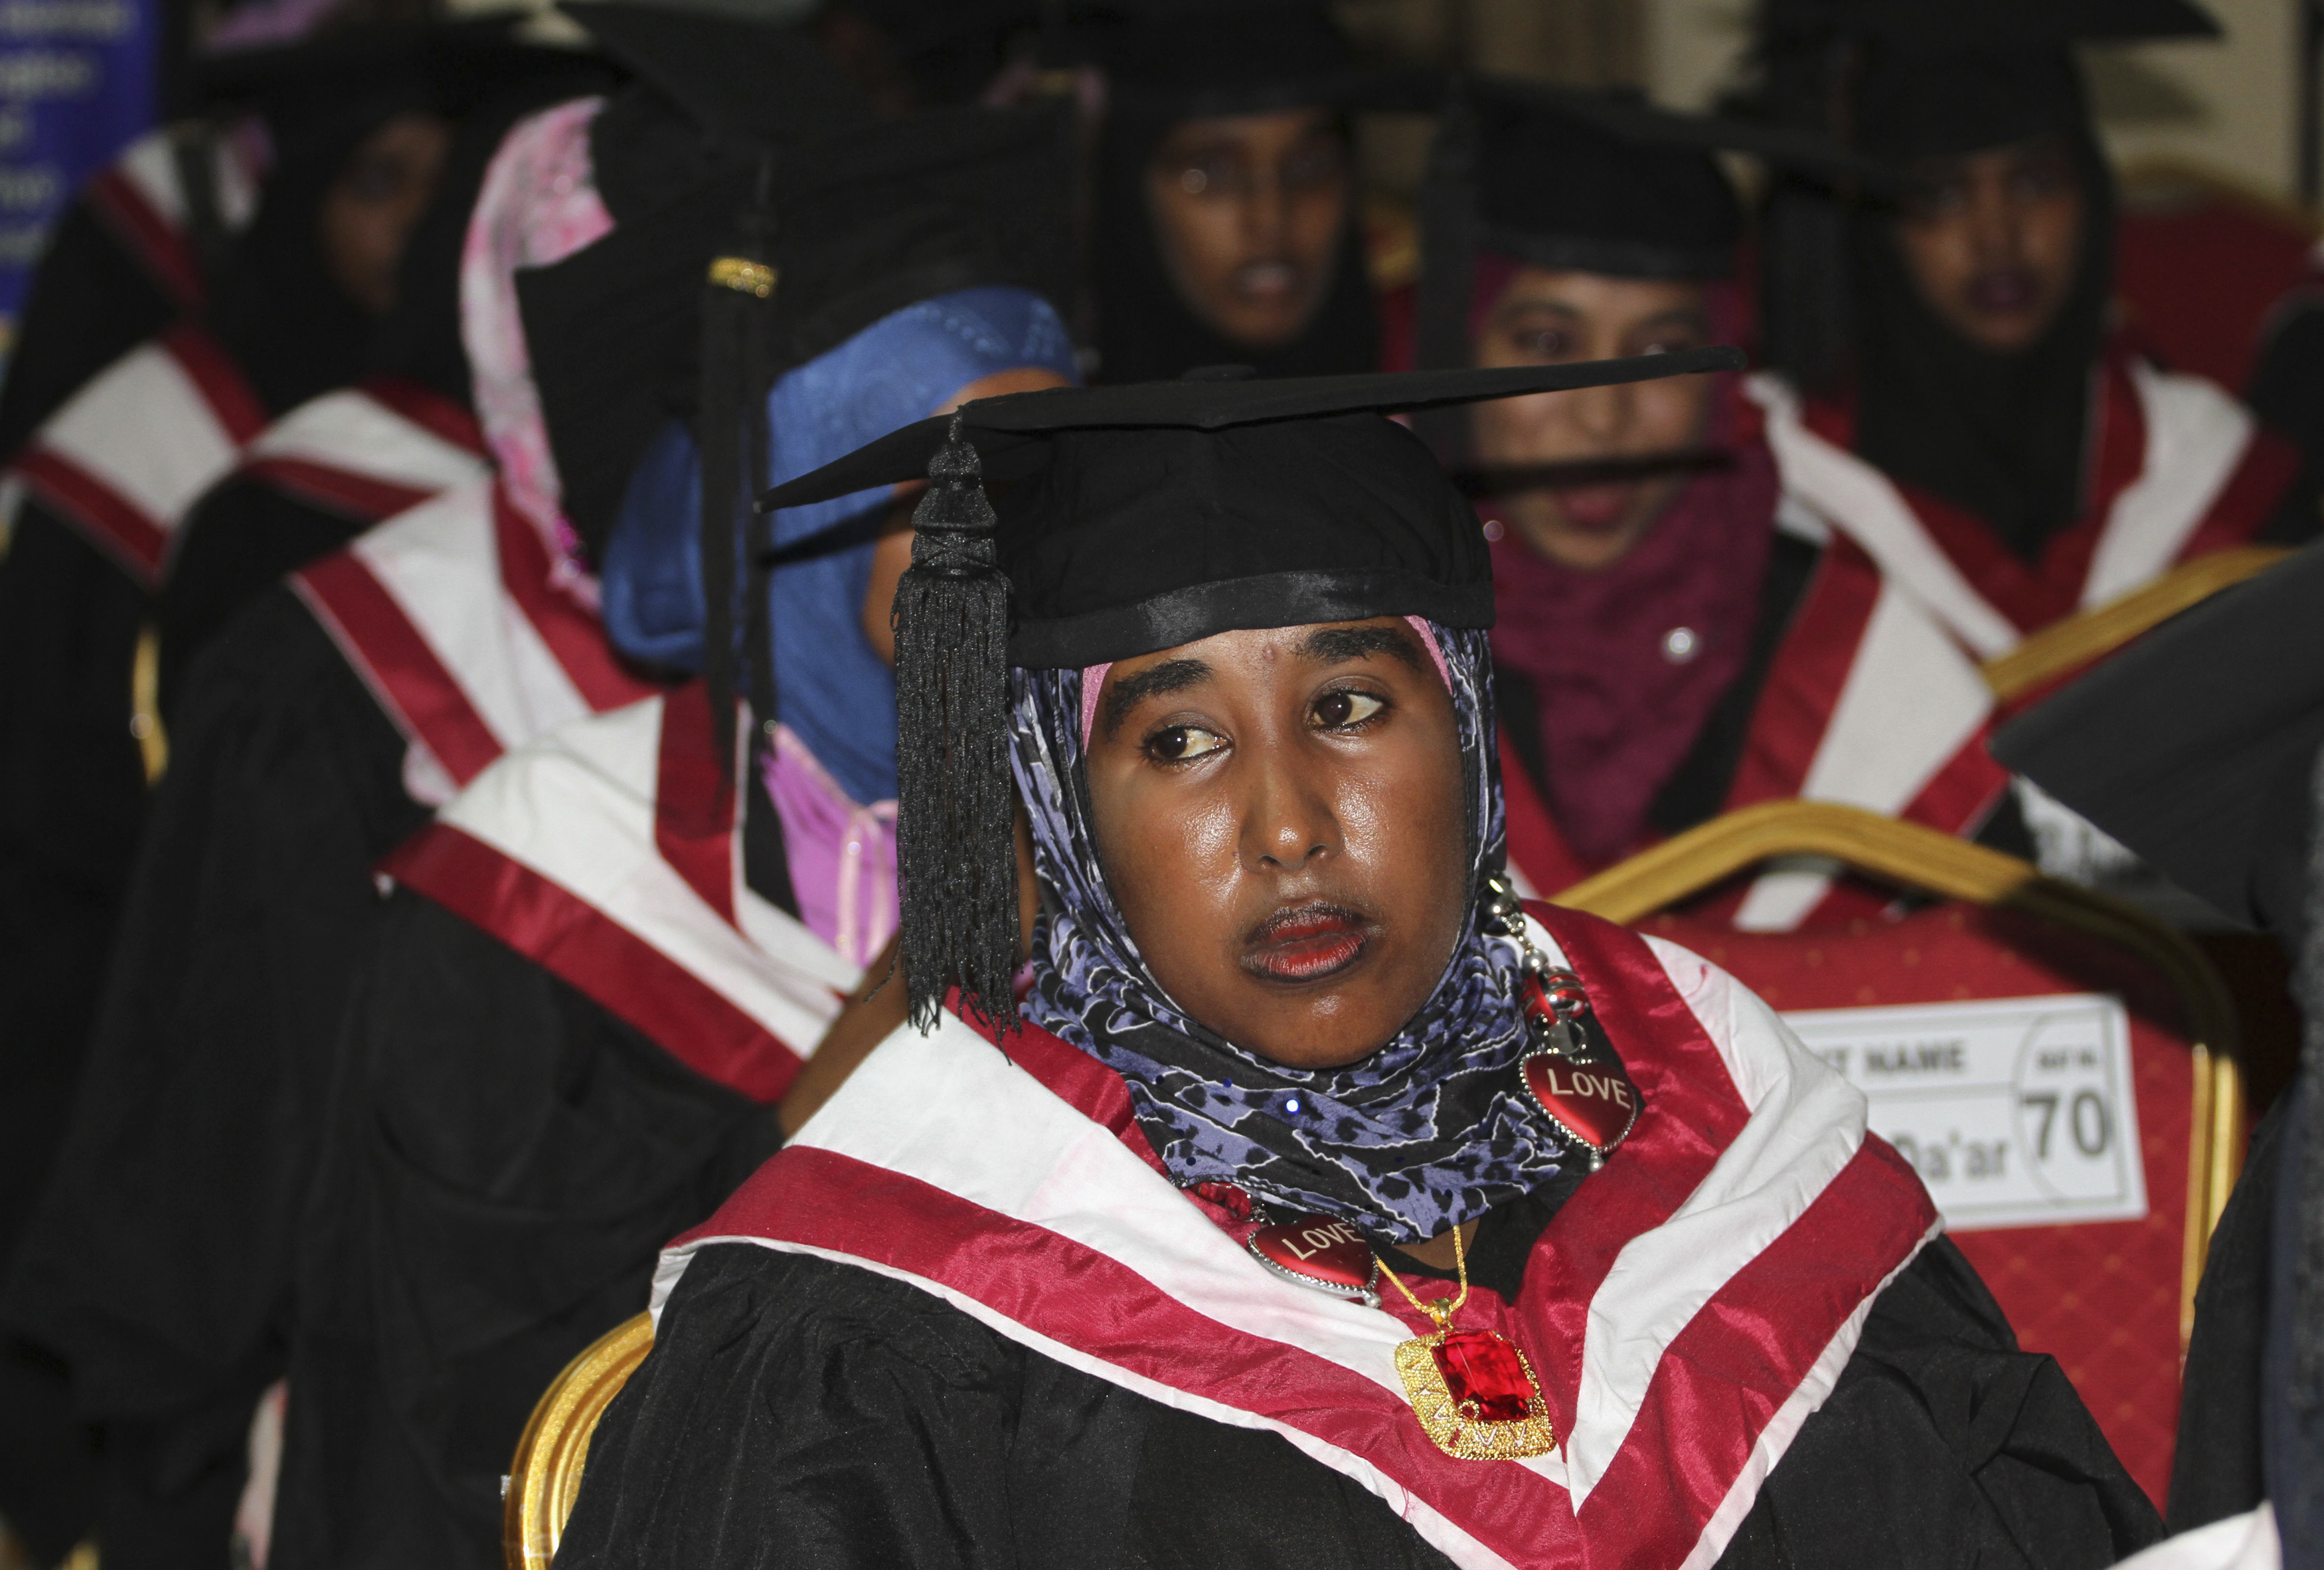 Somalia girl at graduation ceremony